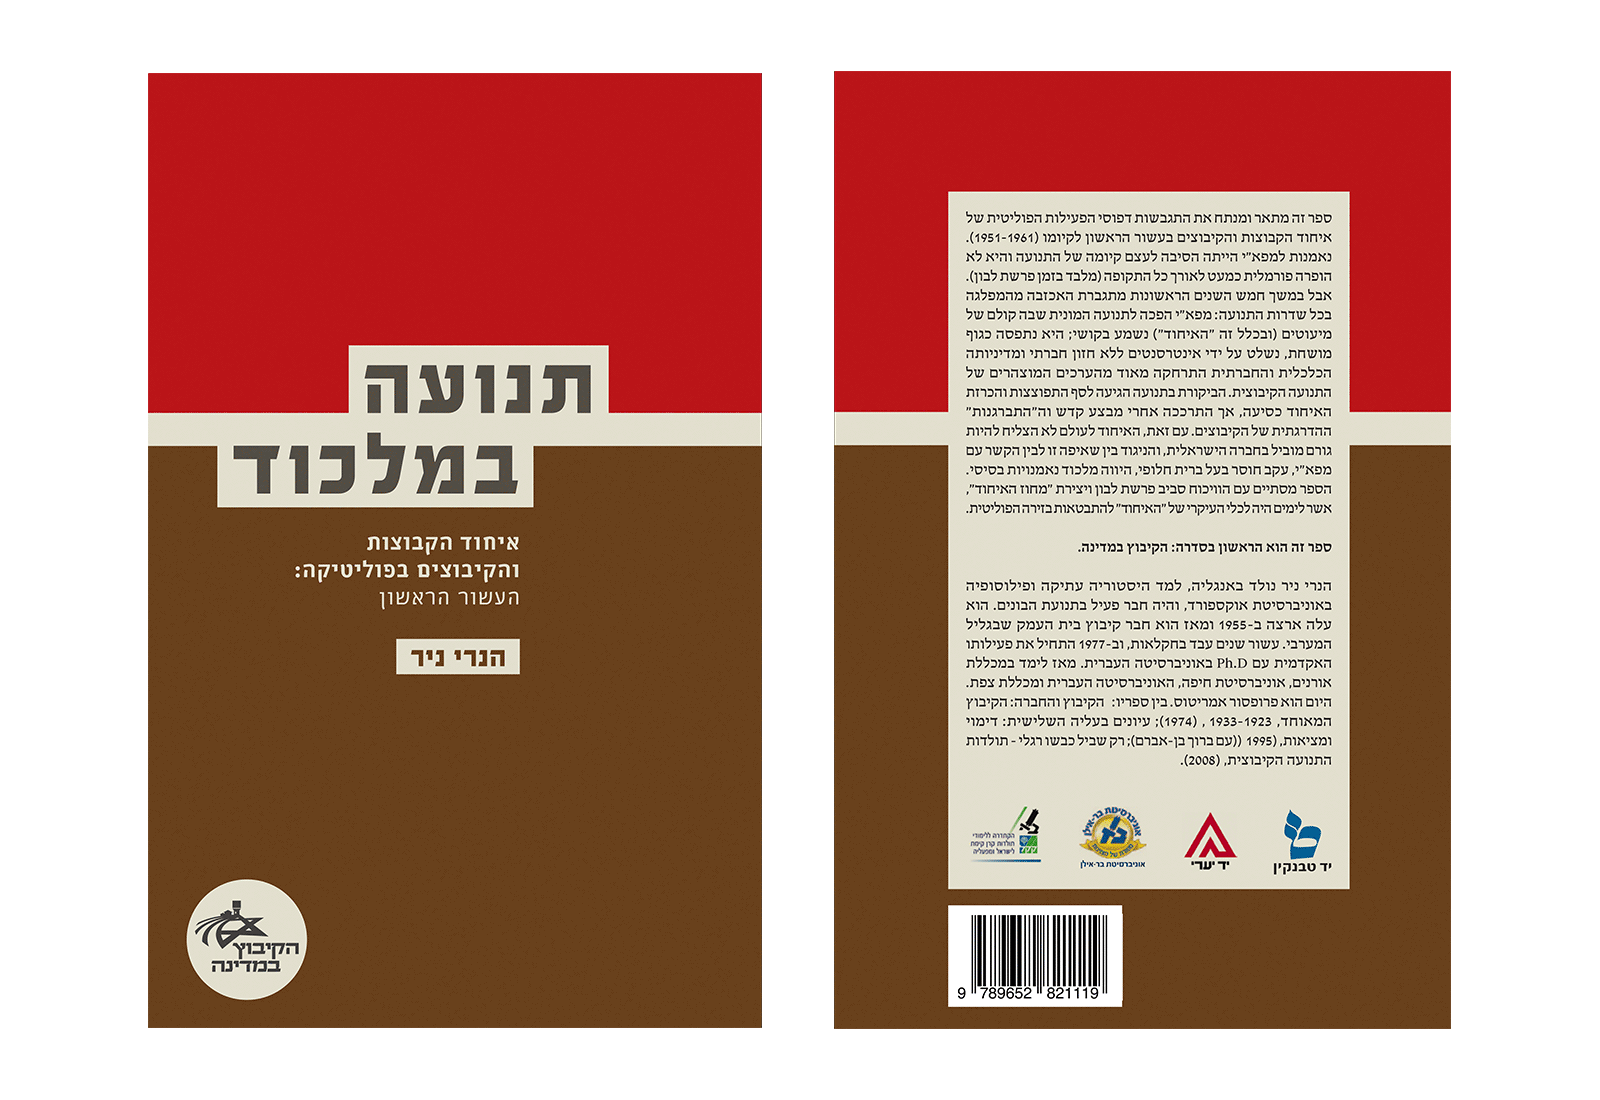 https://bigeyes.co.il/wp-content/uploads/2019/08/kibbutz-books-4.png